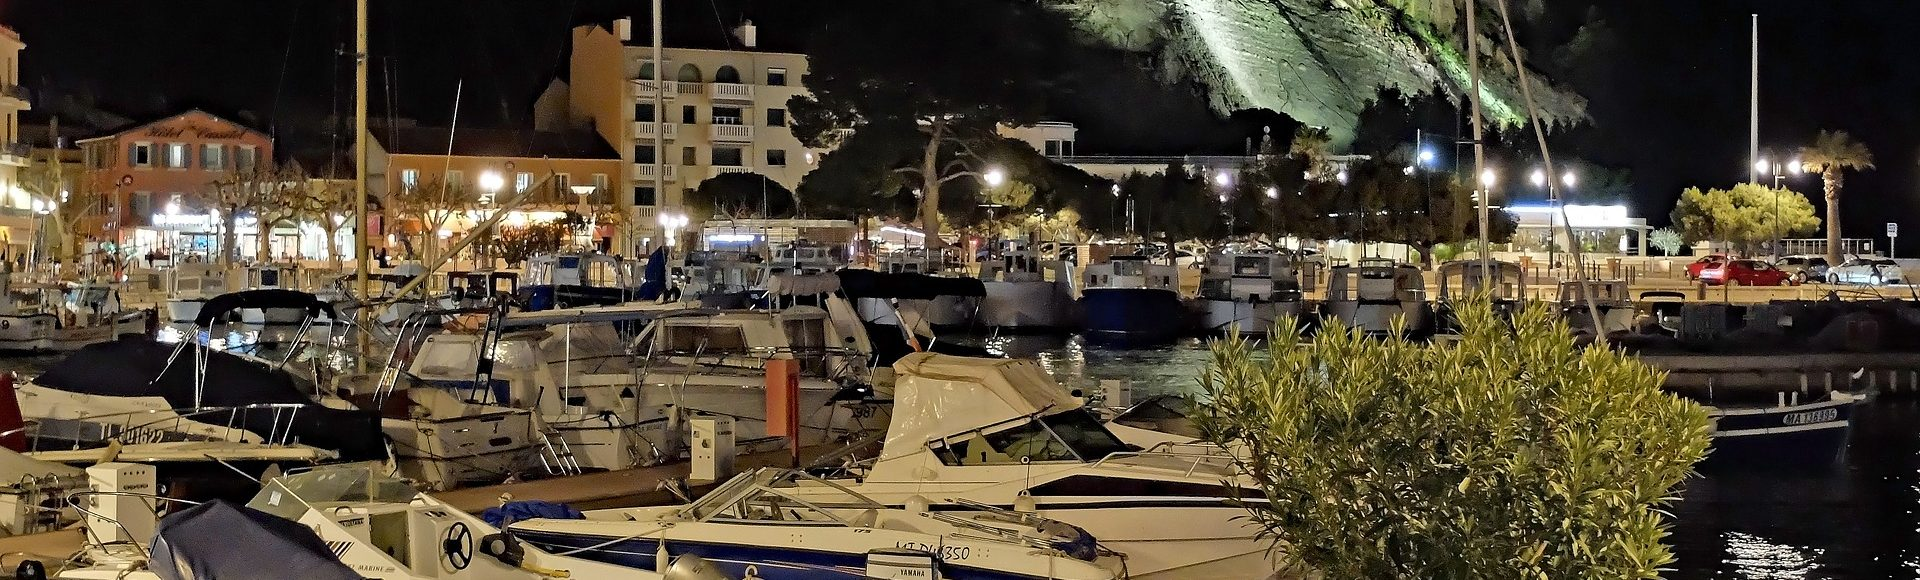 Cassis, France: the Petit French Riviera